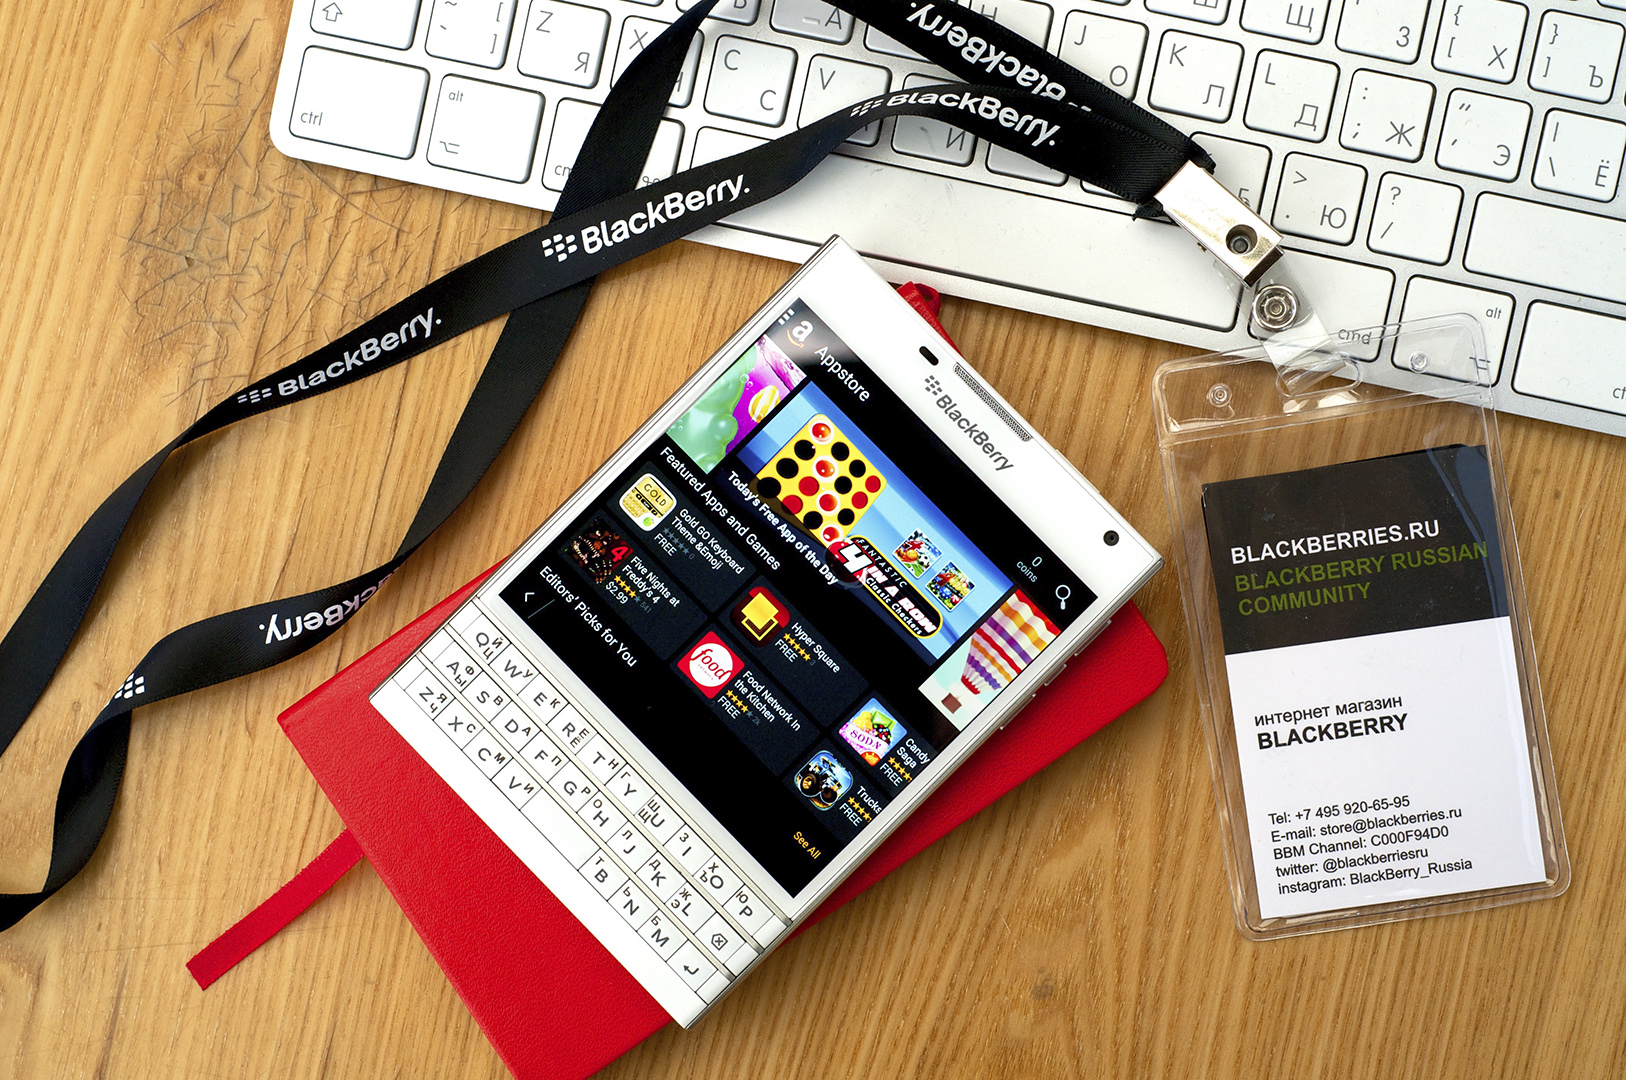 BlackBerry-Passport-Amazon-2